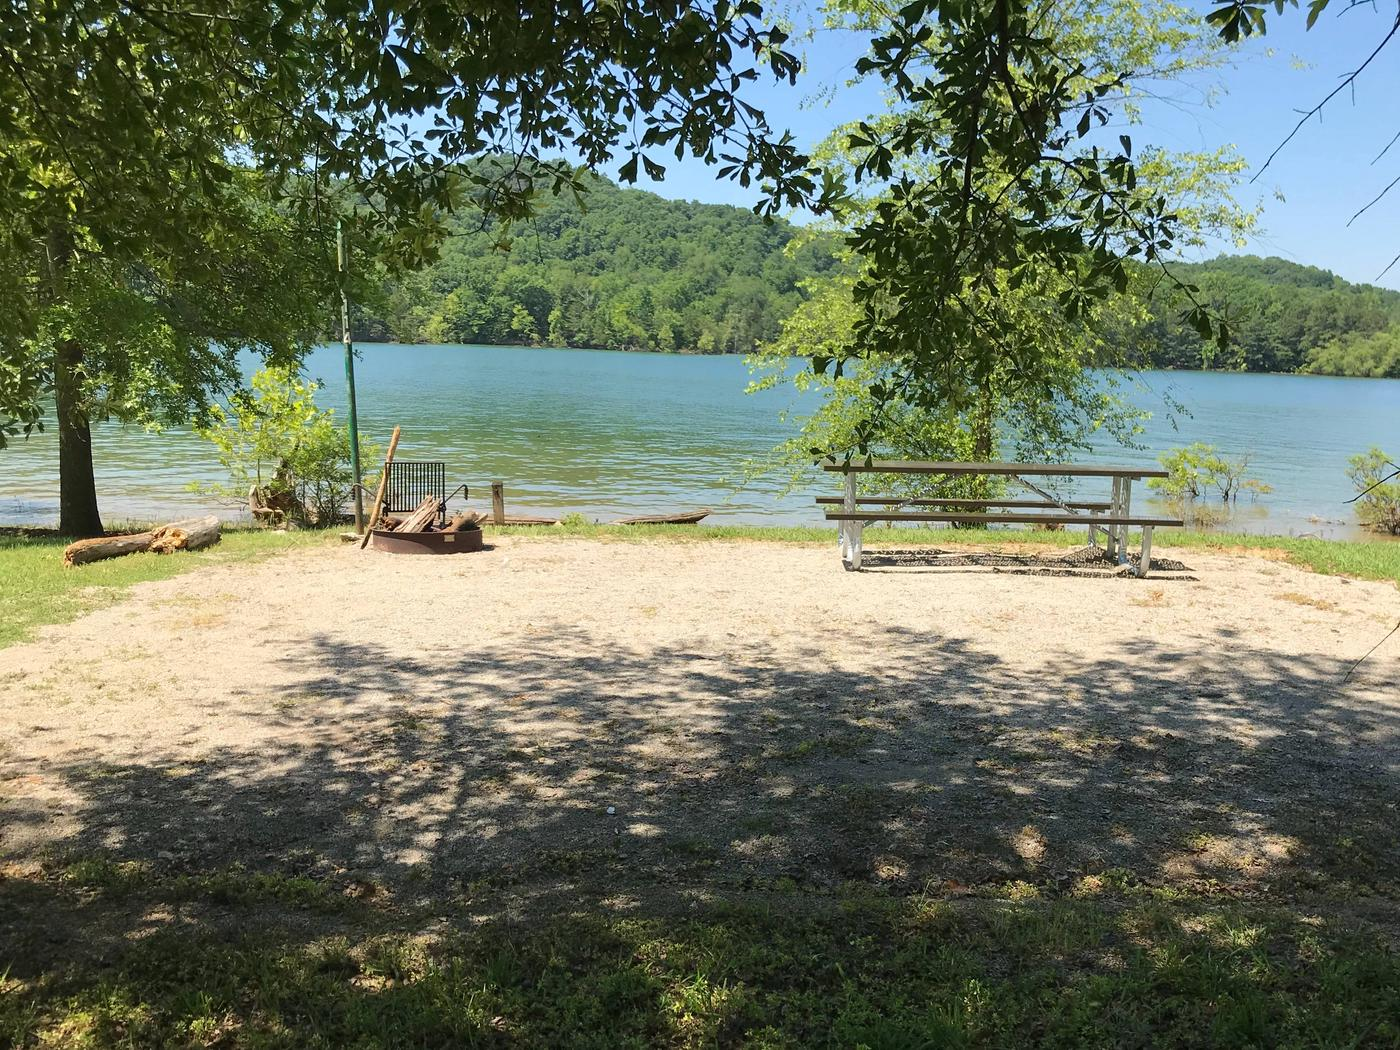 LILLYDALE CAMPGROUND SITE # 114